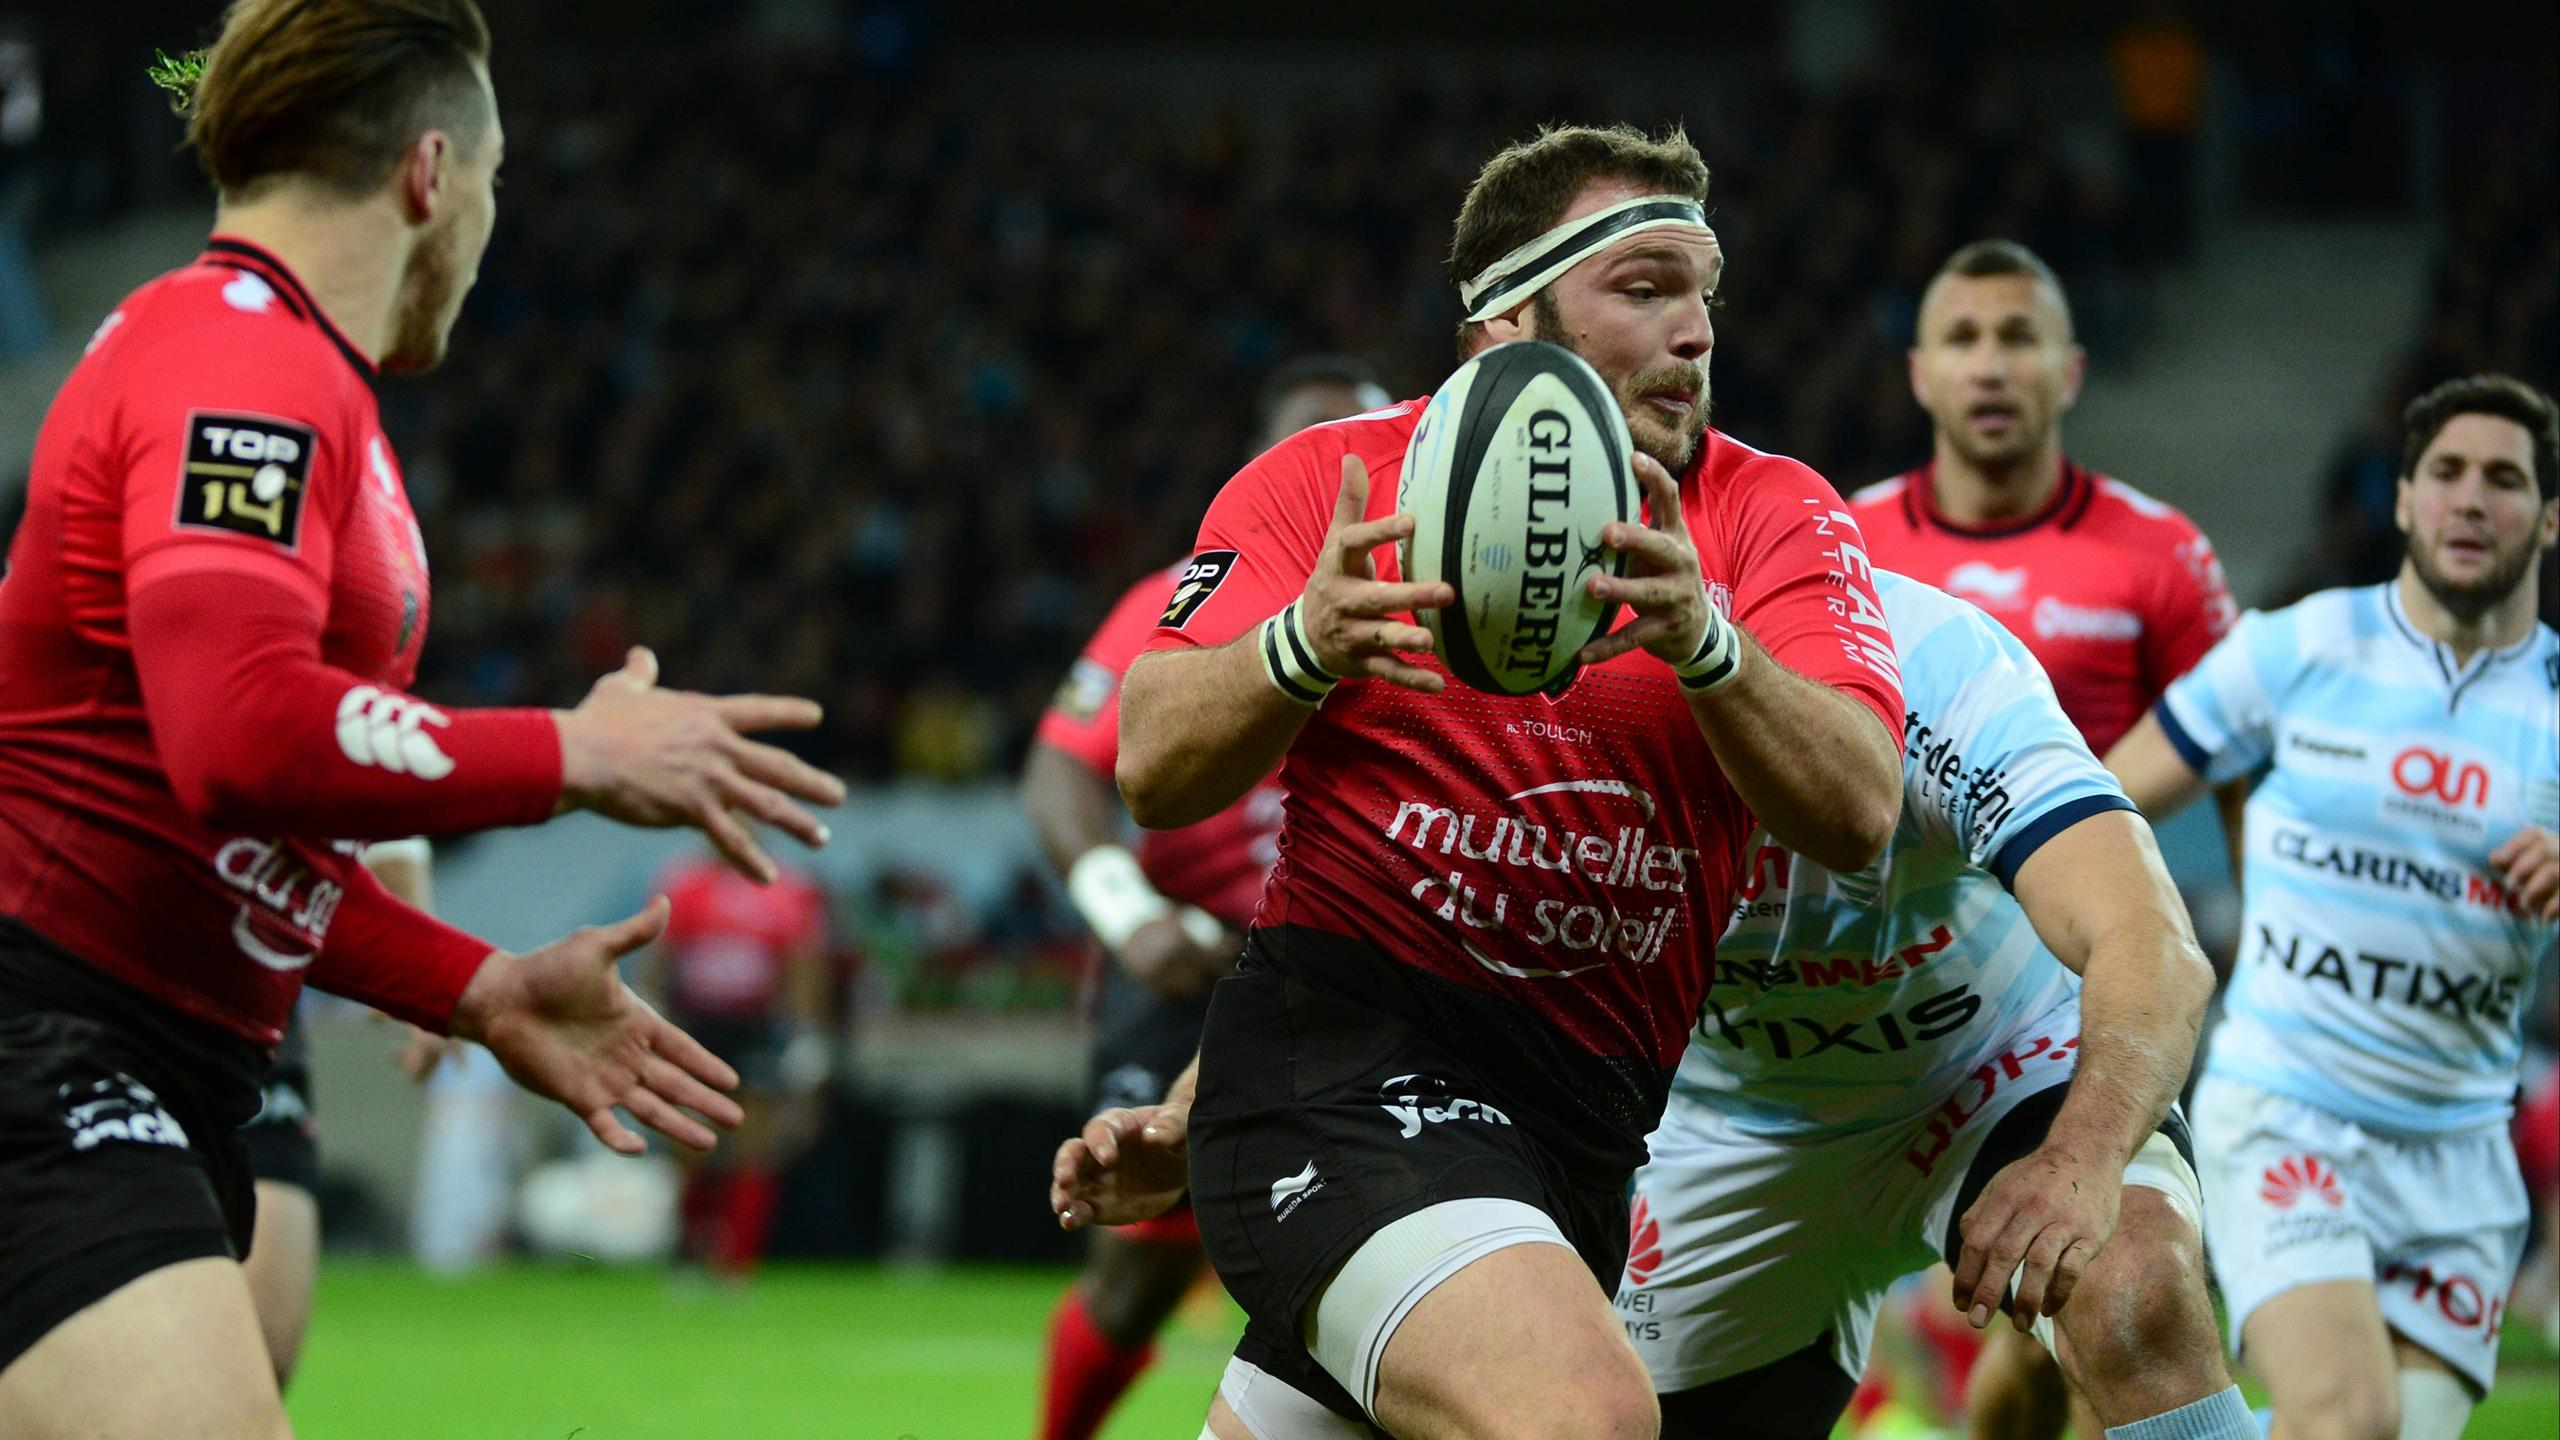 Jean-Charles Orioli (Toulon) face au Racing 92 - 26 mars 2016